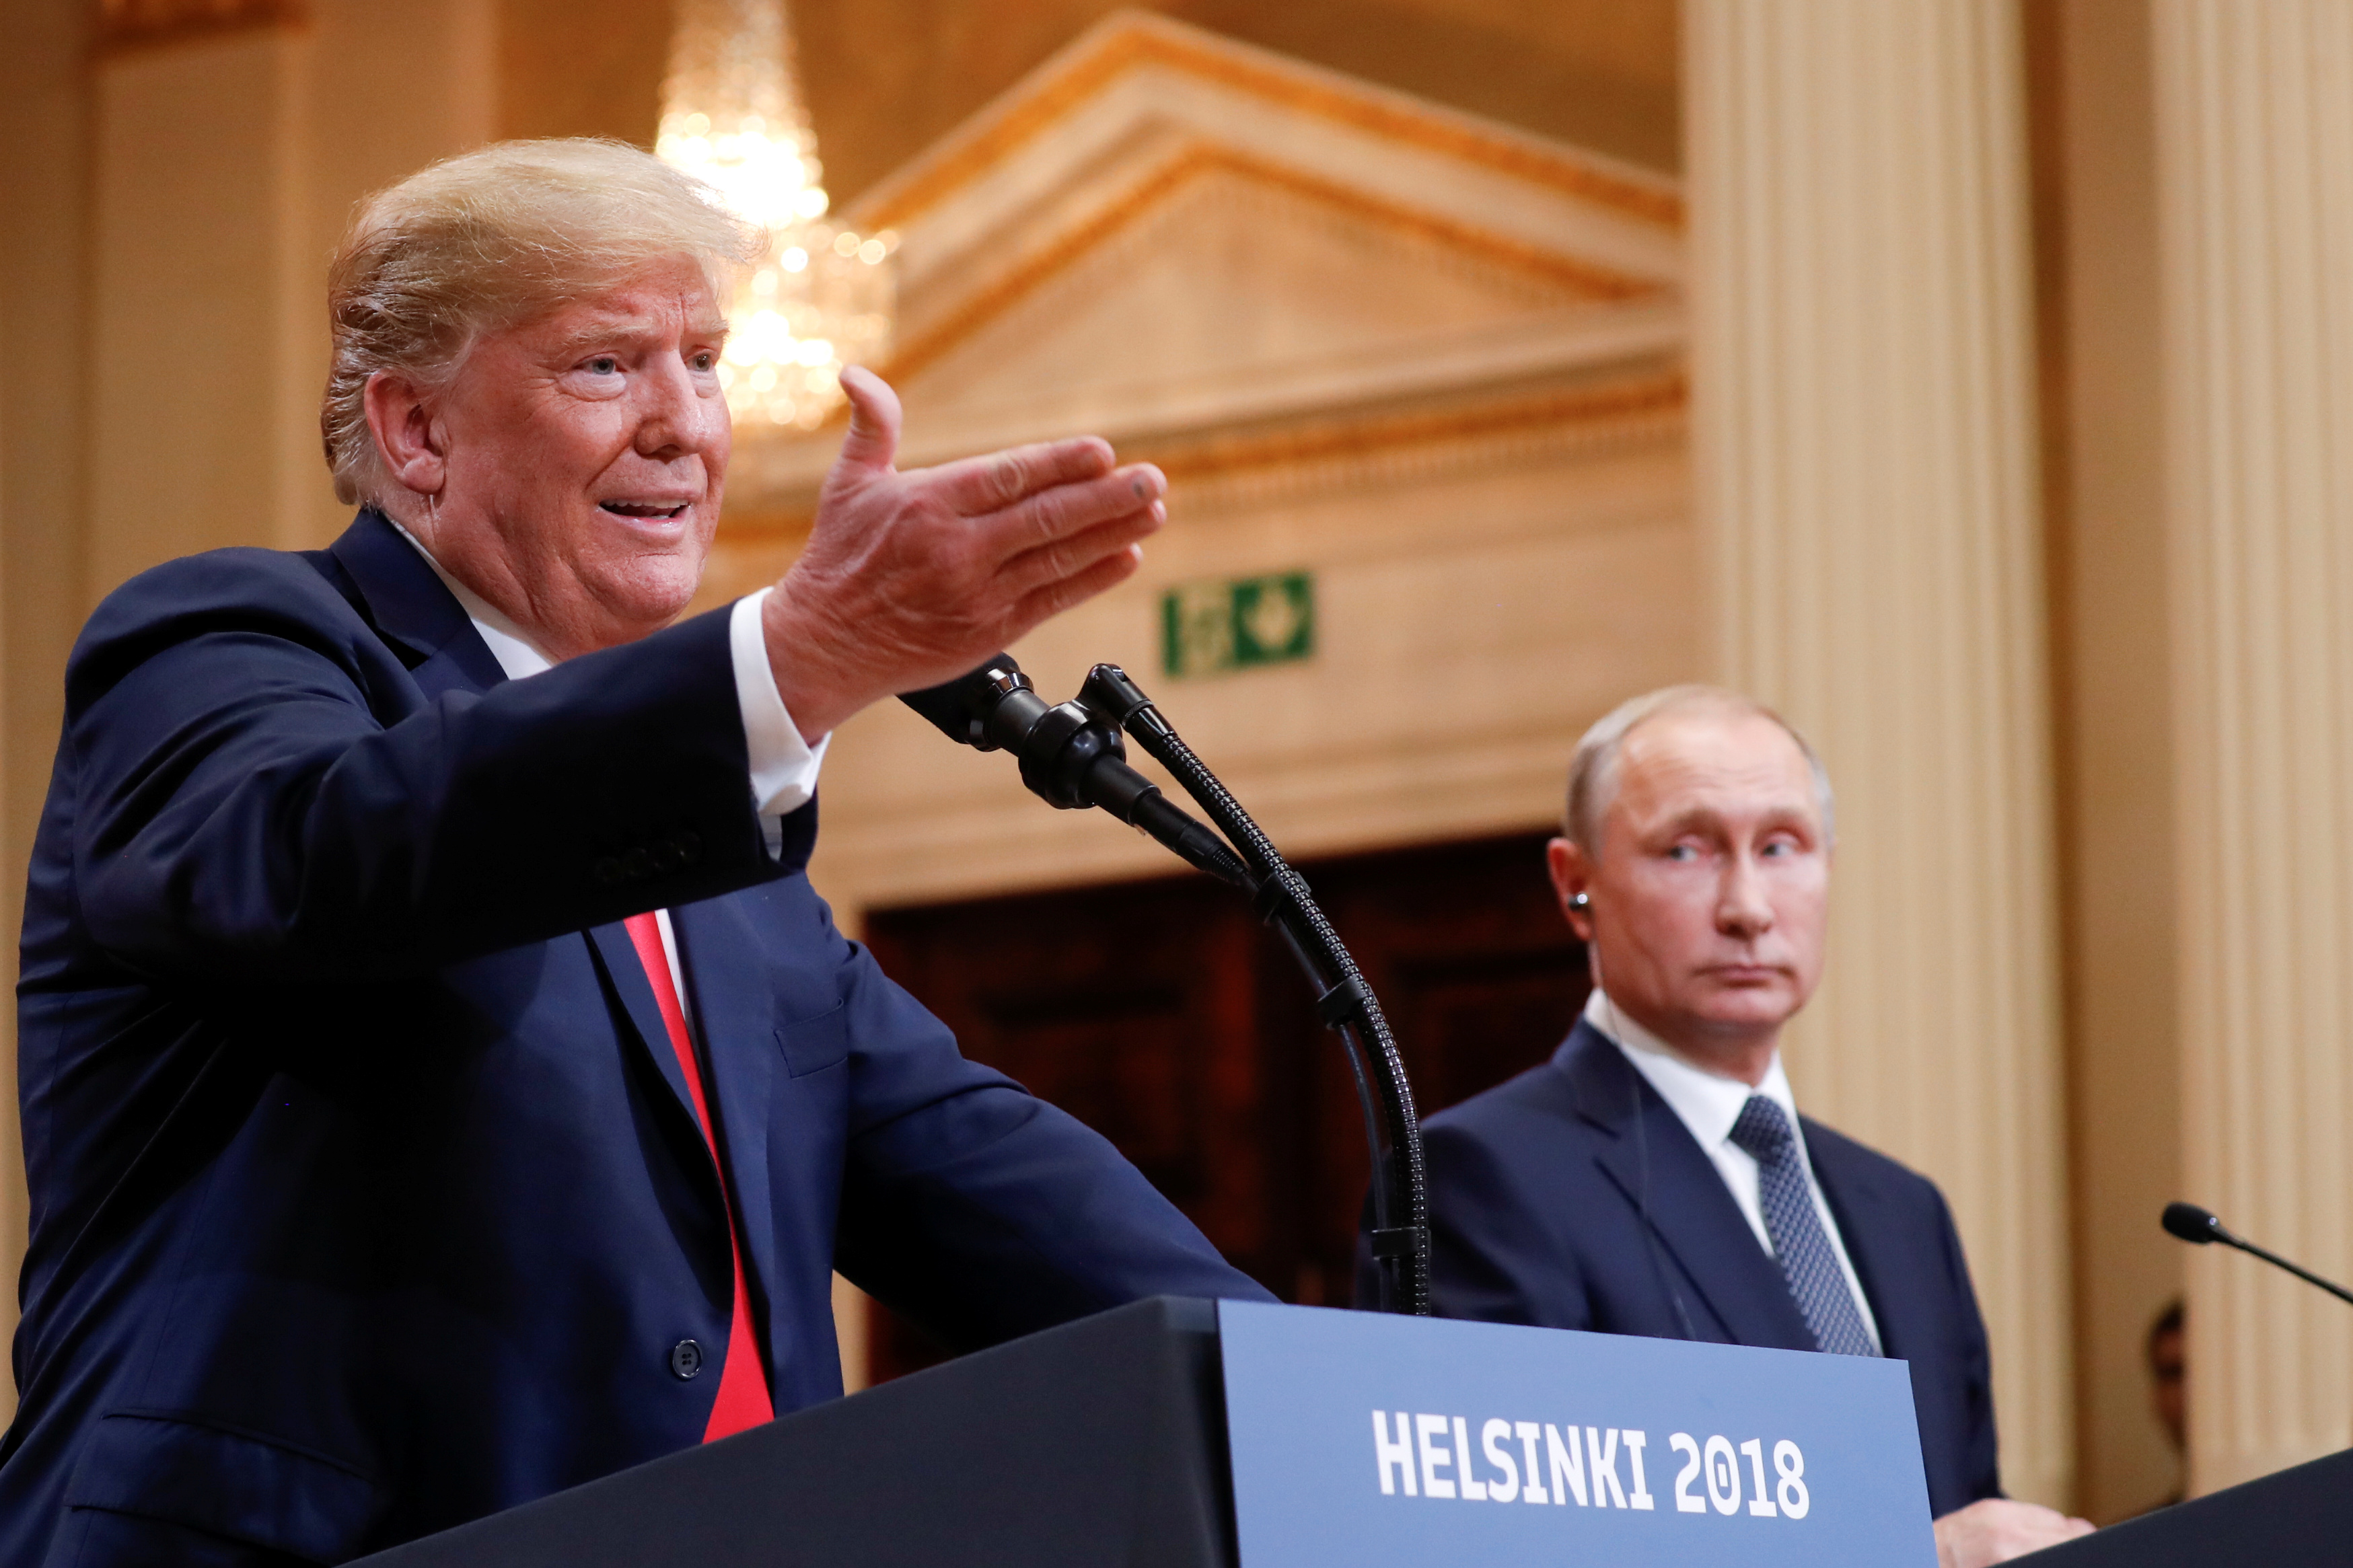 U.S. President Donald Trump gestures during a joint news conference with Russia's President Vladimir Putin after their meeting in Helsinki, Finland, July 16, 2018. REUTERS/Kevin Lamarque - RC11FBFEF700